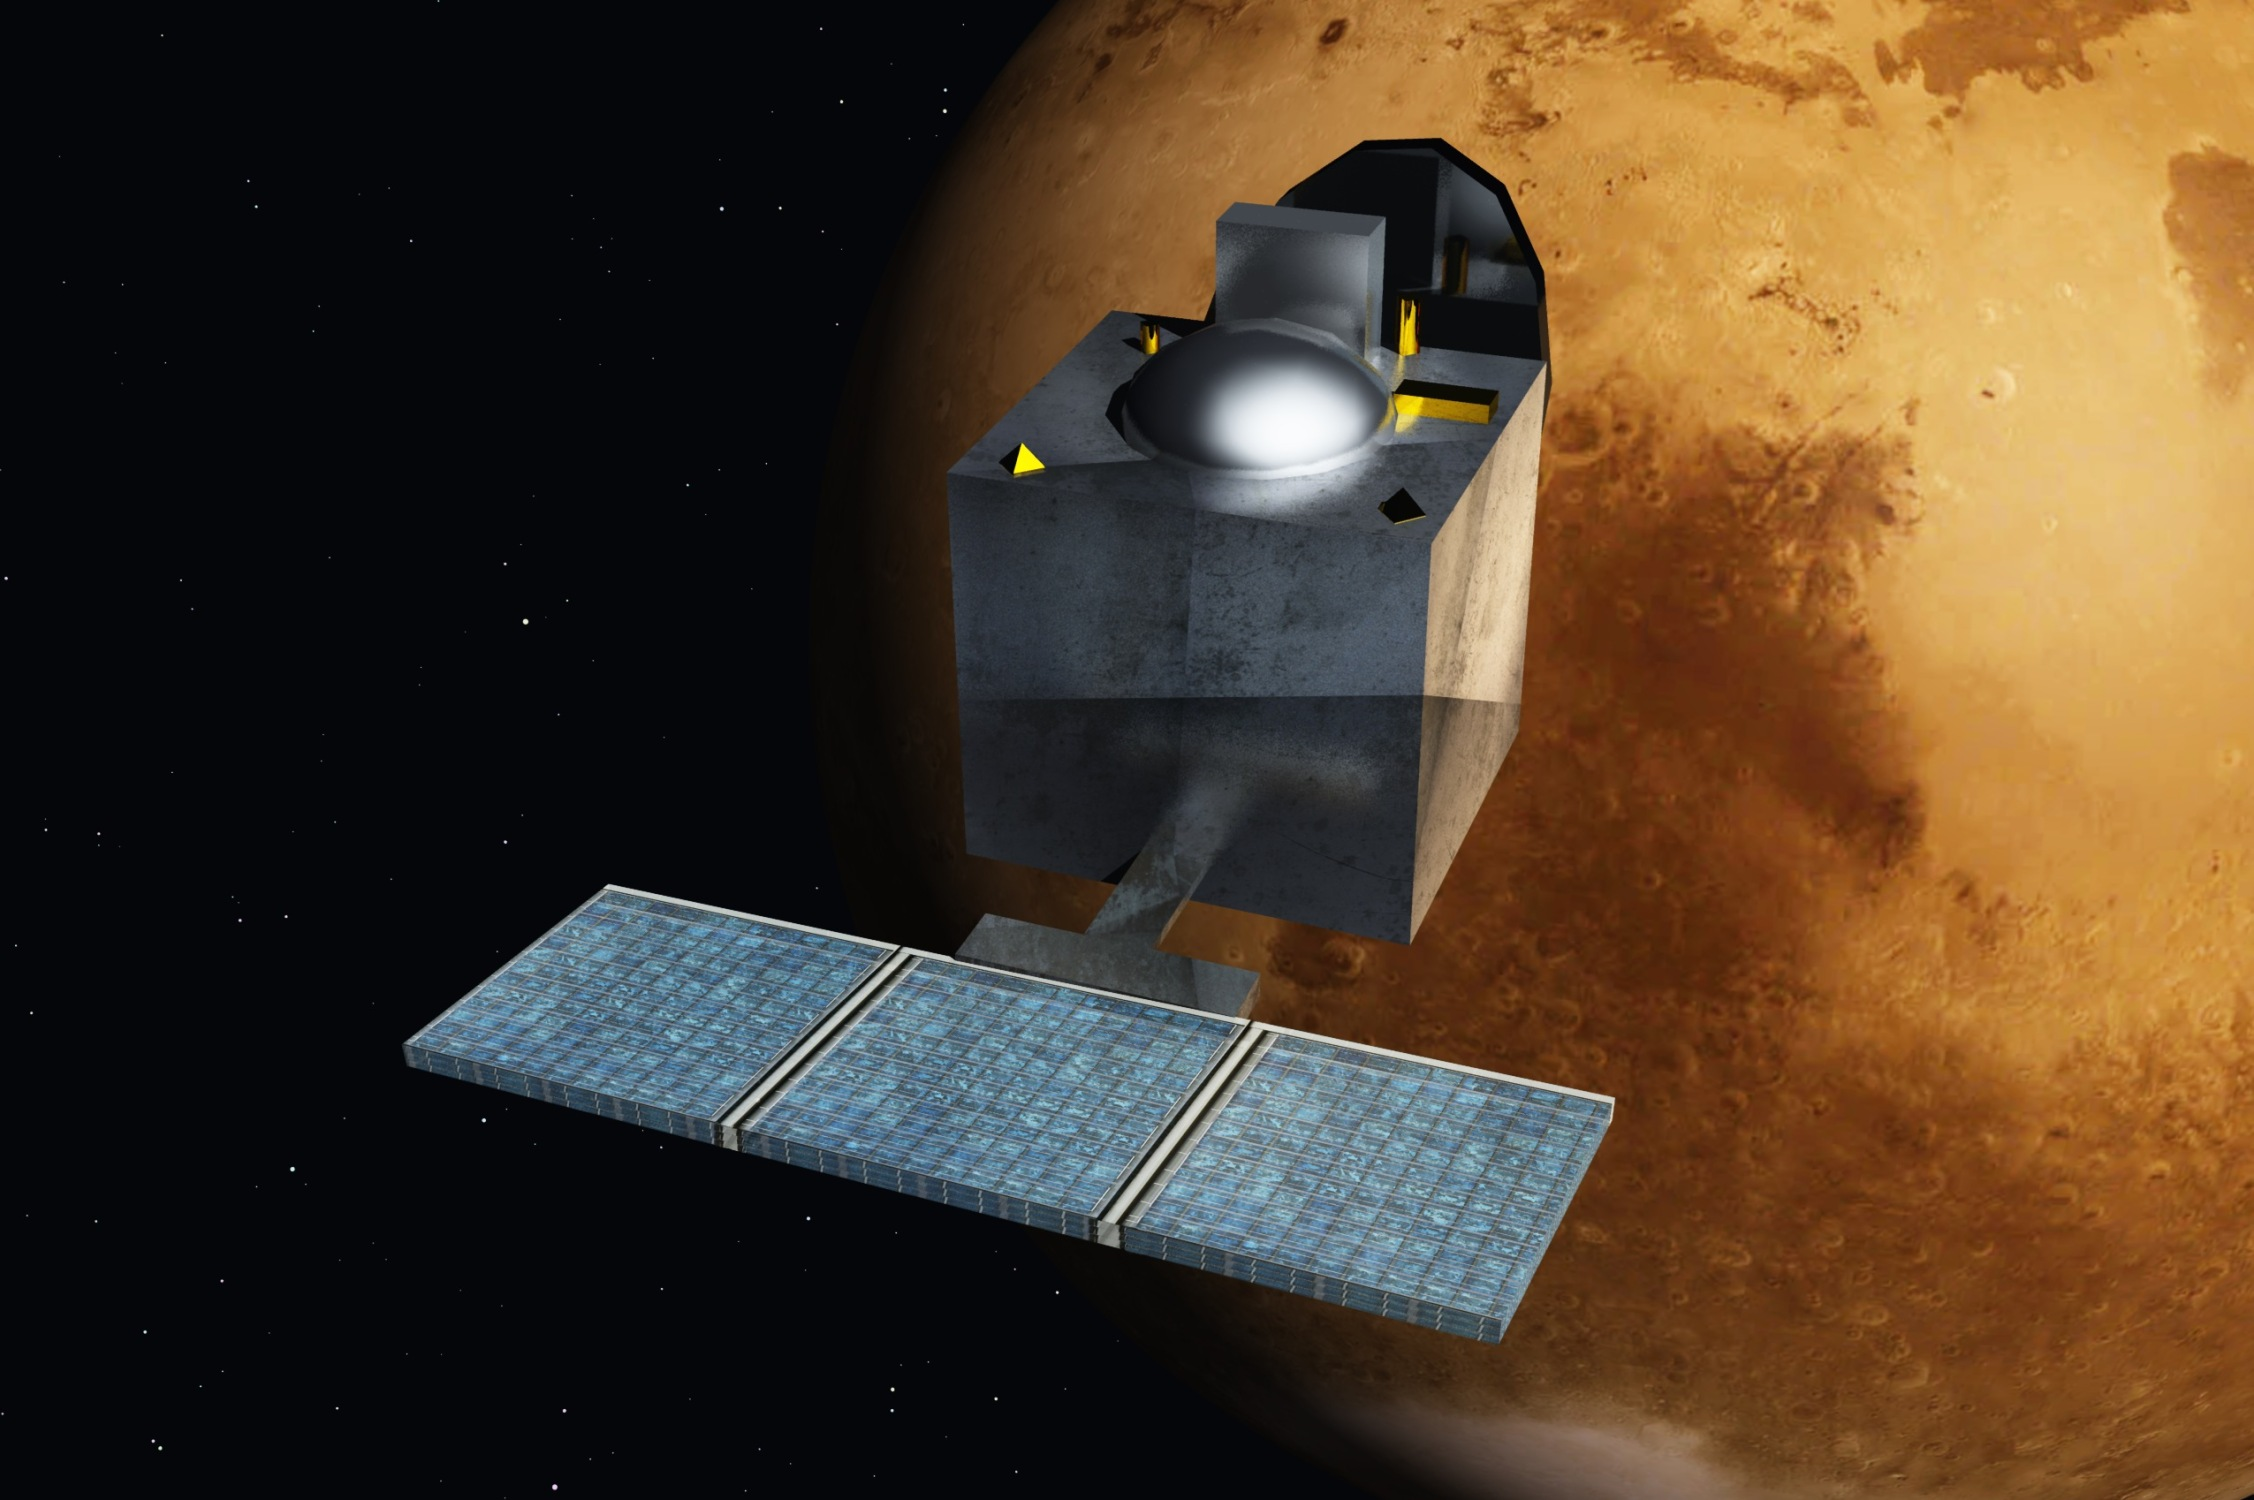 ISRO's Mangalyaan Orbiter Completes Six Years Around Mars. Where's the Science? – The Wire Science